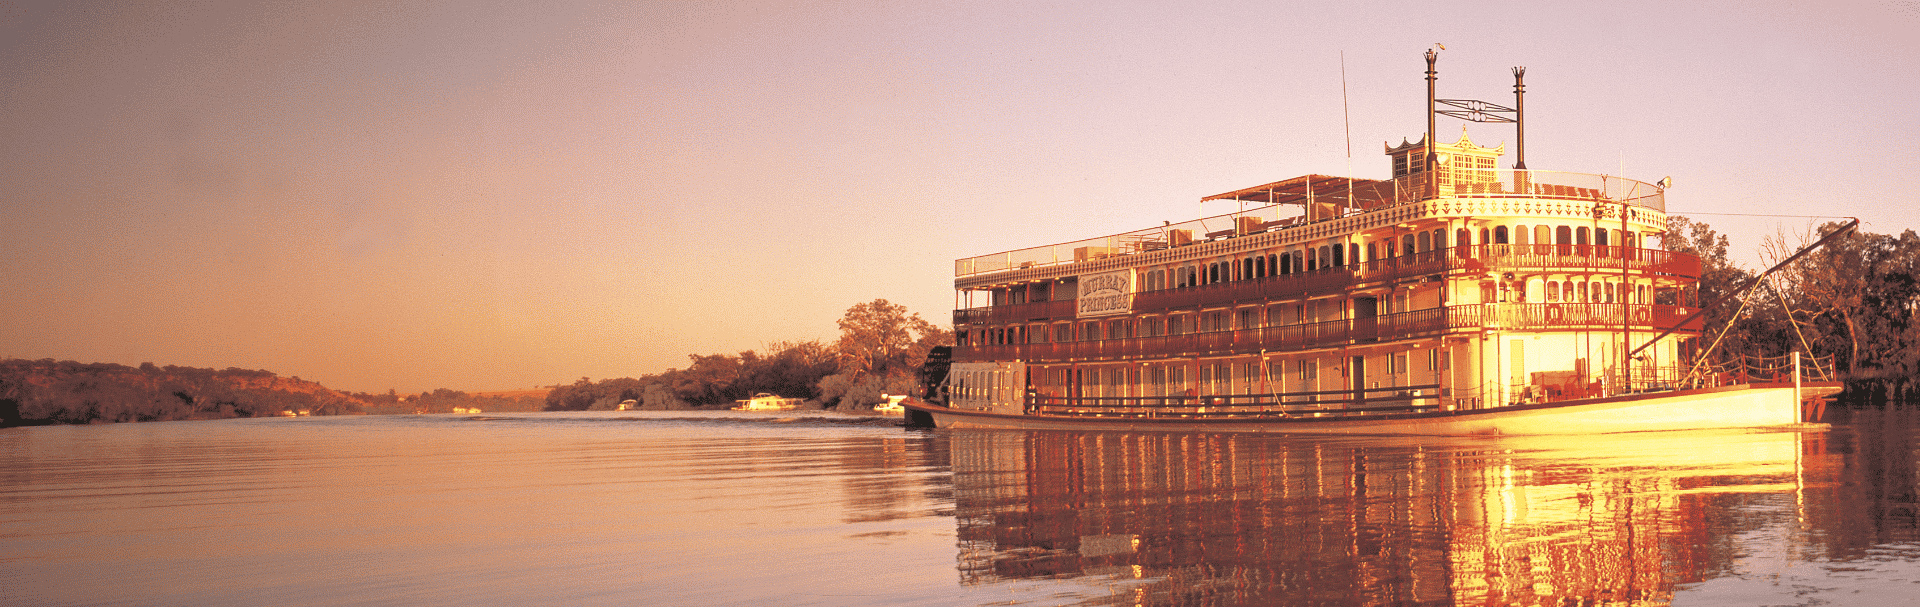 Murray River Cruises - 7 Boats Depart Weekly on a Murray River Cruise